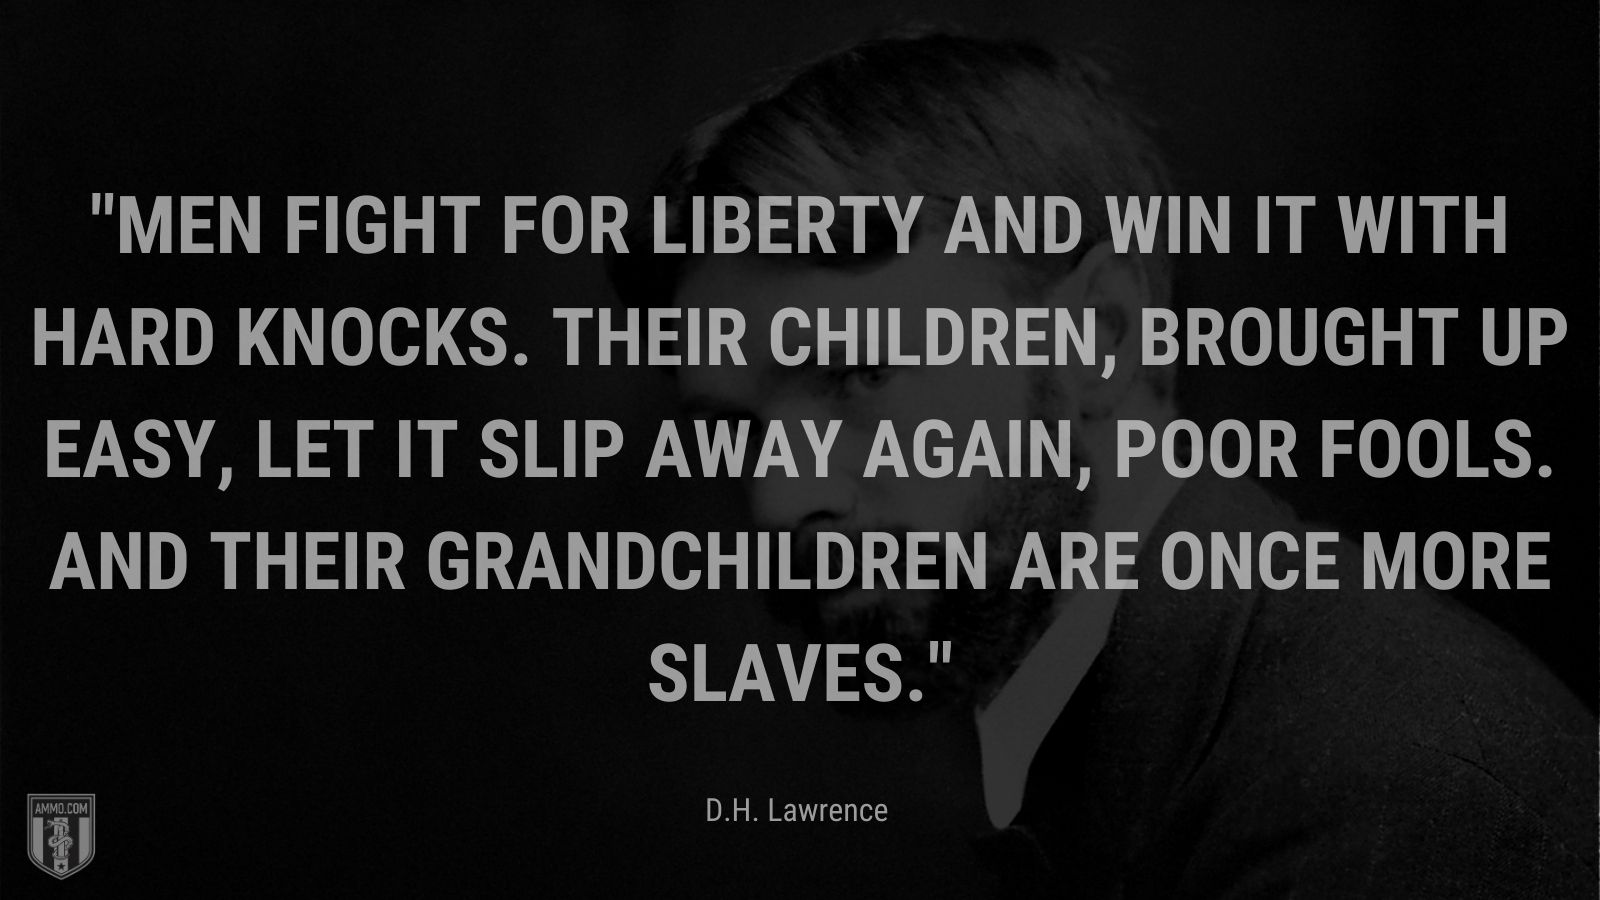 """""""Men fight for liberty and win it with hard knocks. Their children, brought up easy, let it slip away again, poor fools. And their grandchildren are once more slaves."""" - D.H. Lawrence"""